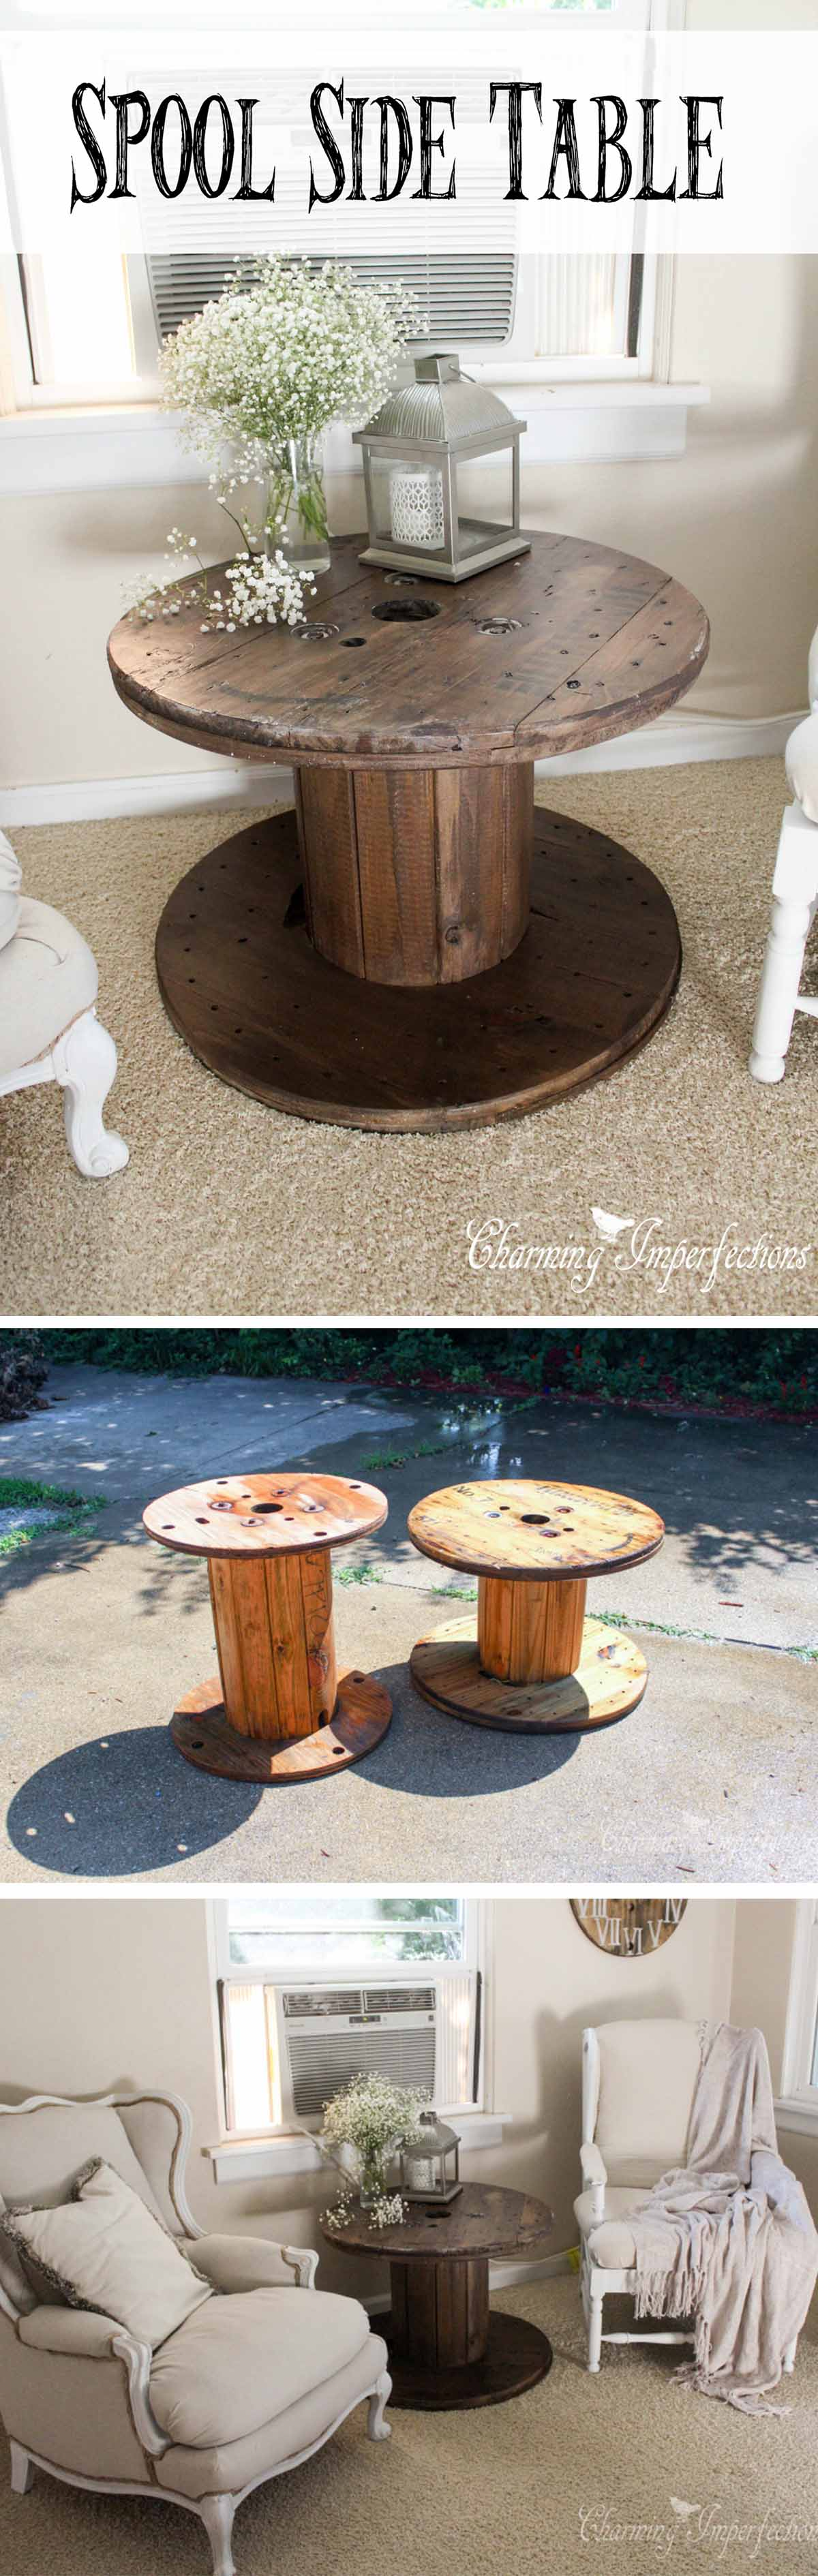 best diy farmhouse coffee table ideas and designs for homebnc round accent easy industrial wooden spool office bar stool set three legged rustic style end tables plastic garden